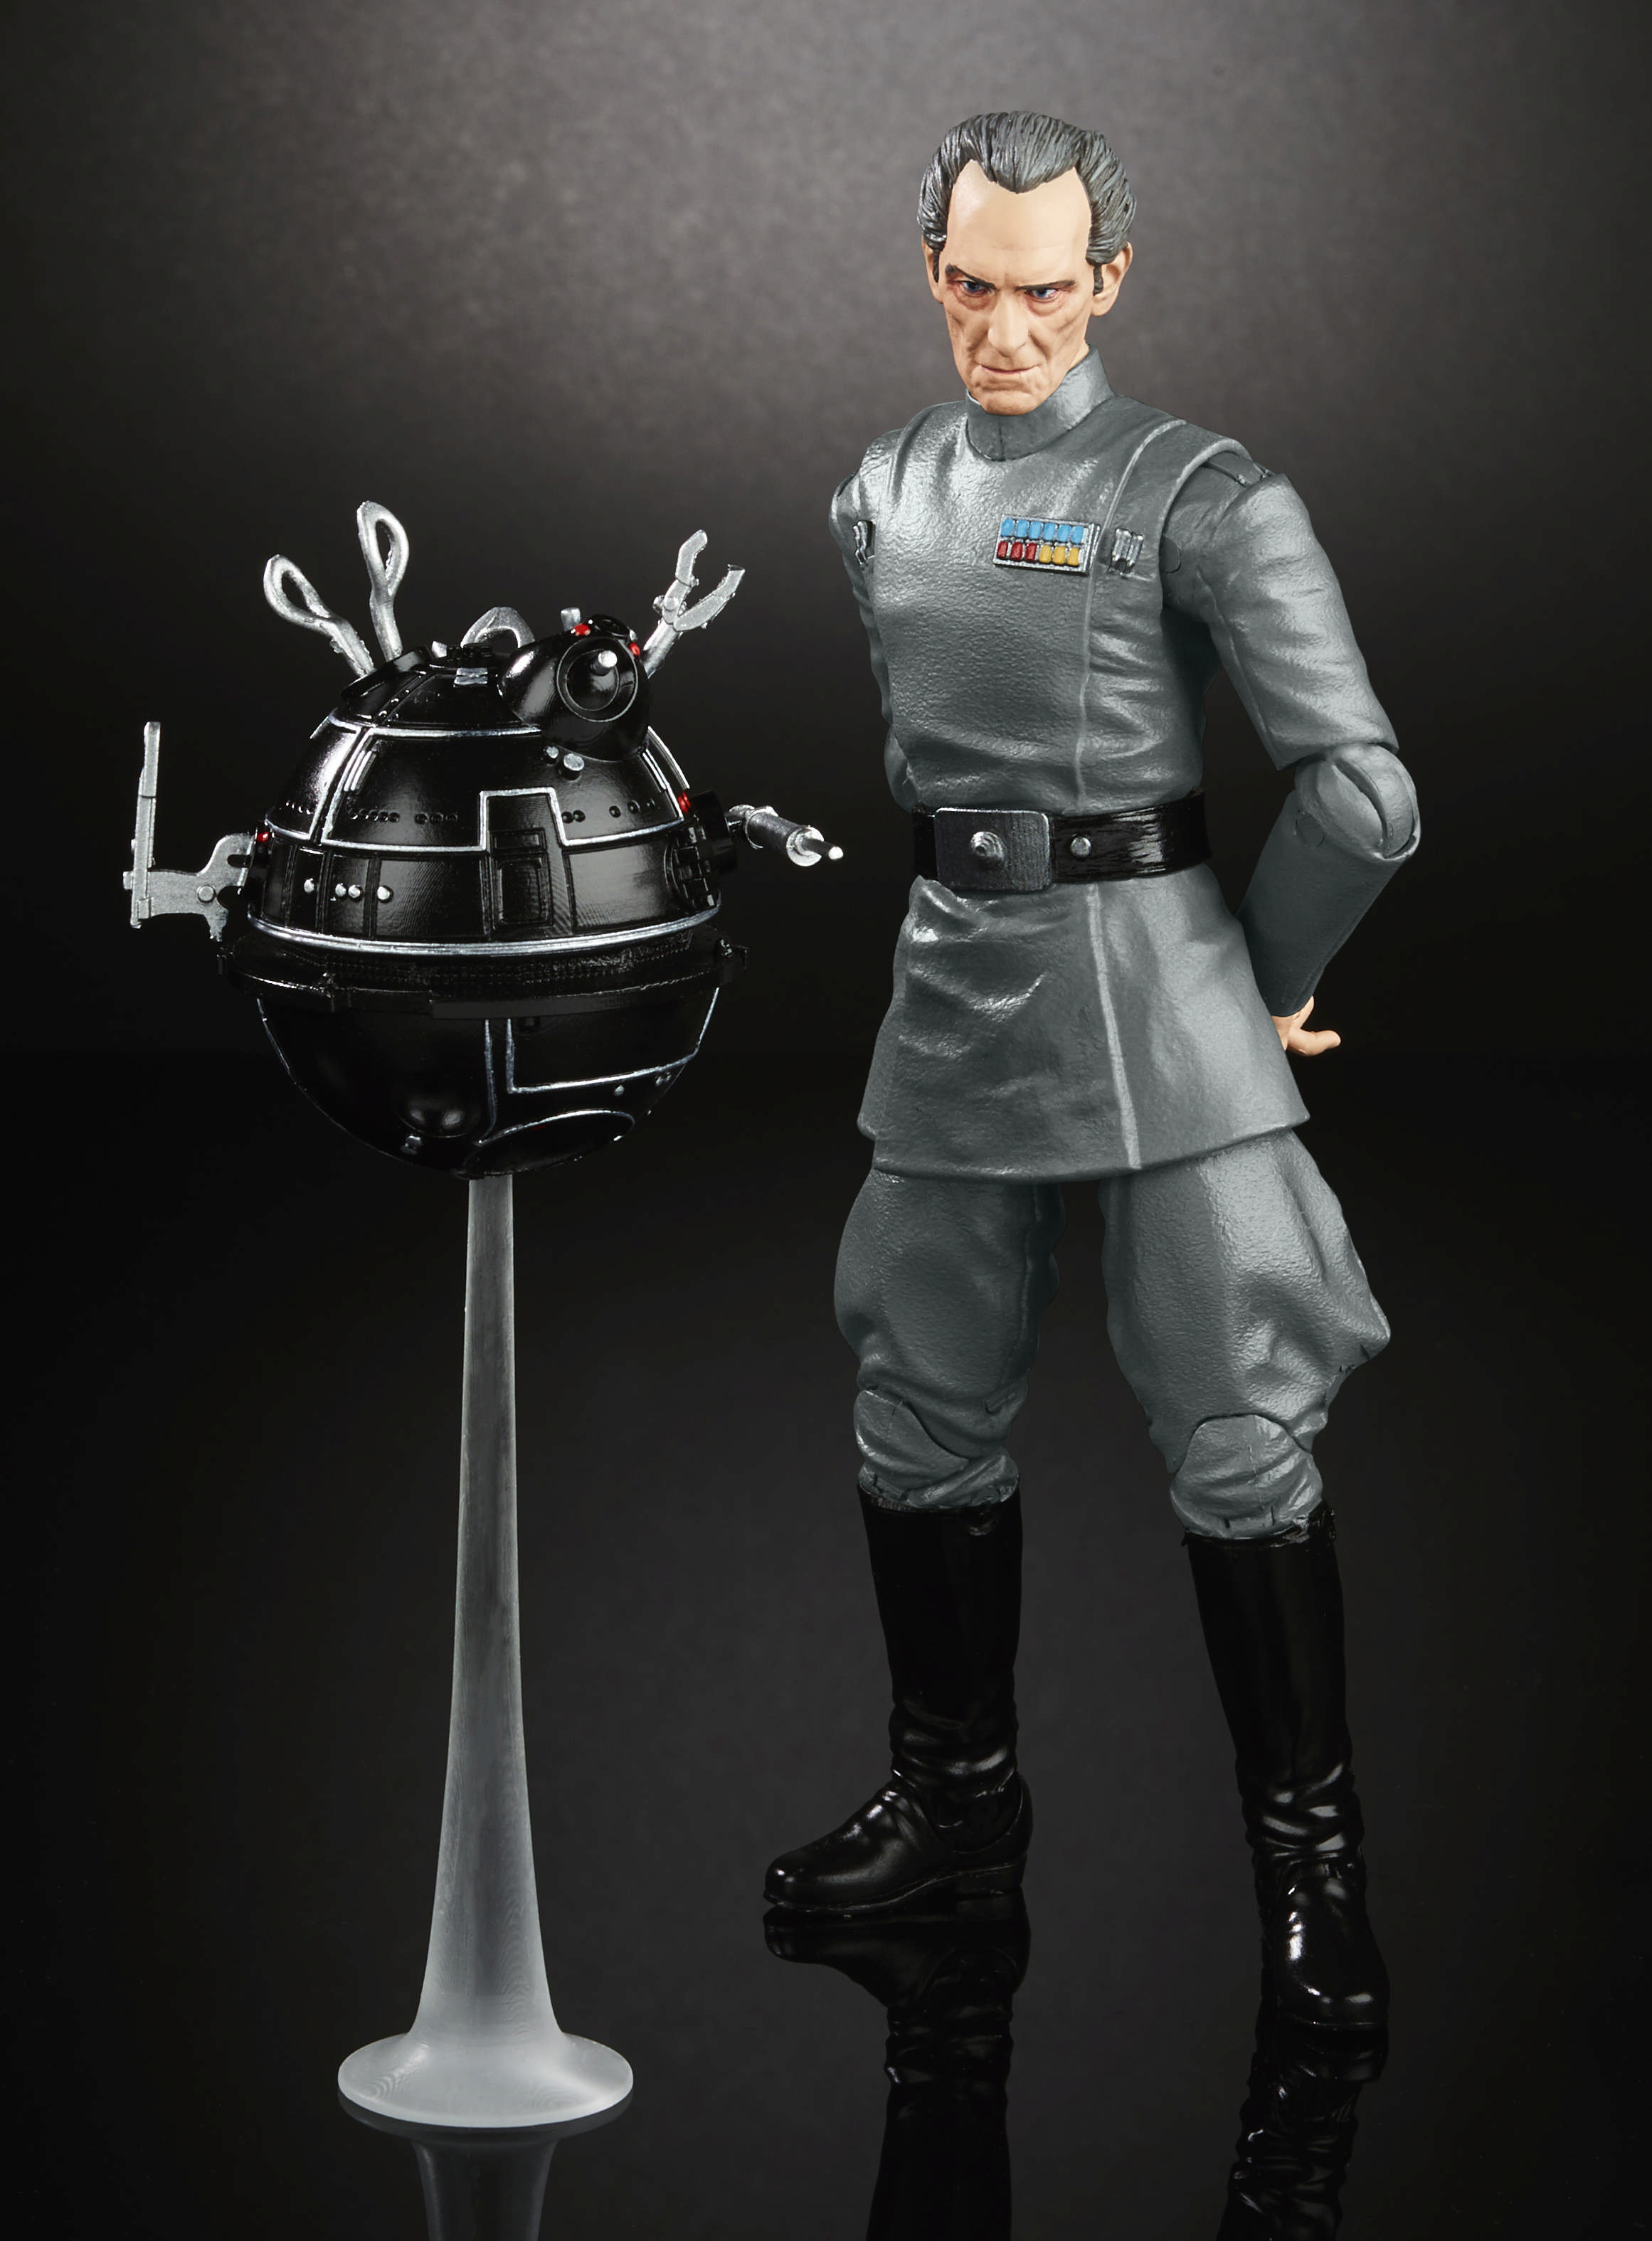 New Star Wars Toys : Star wars celebration black series figures preview